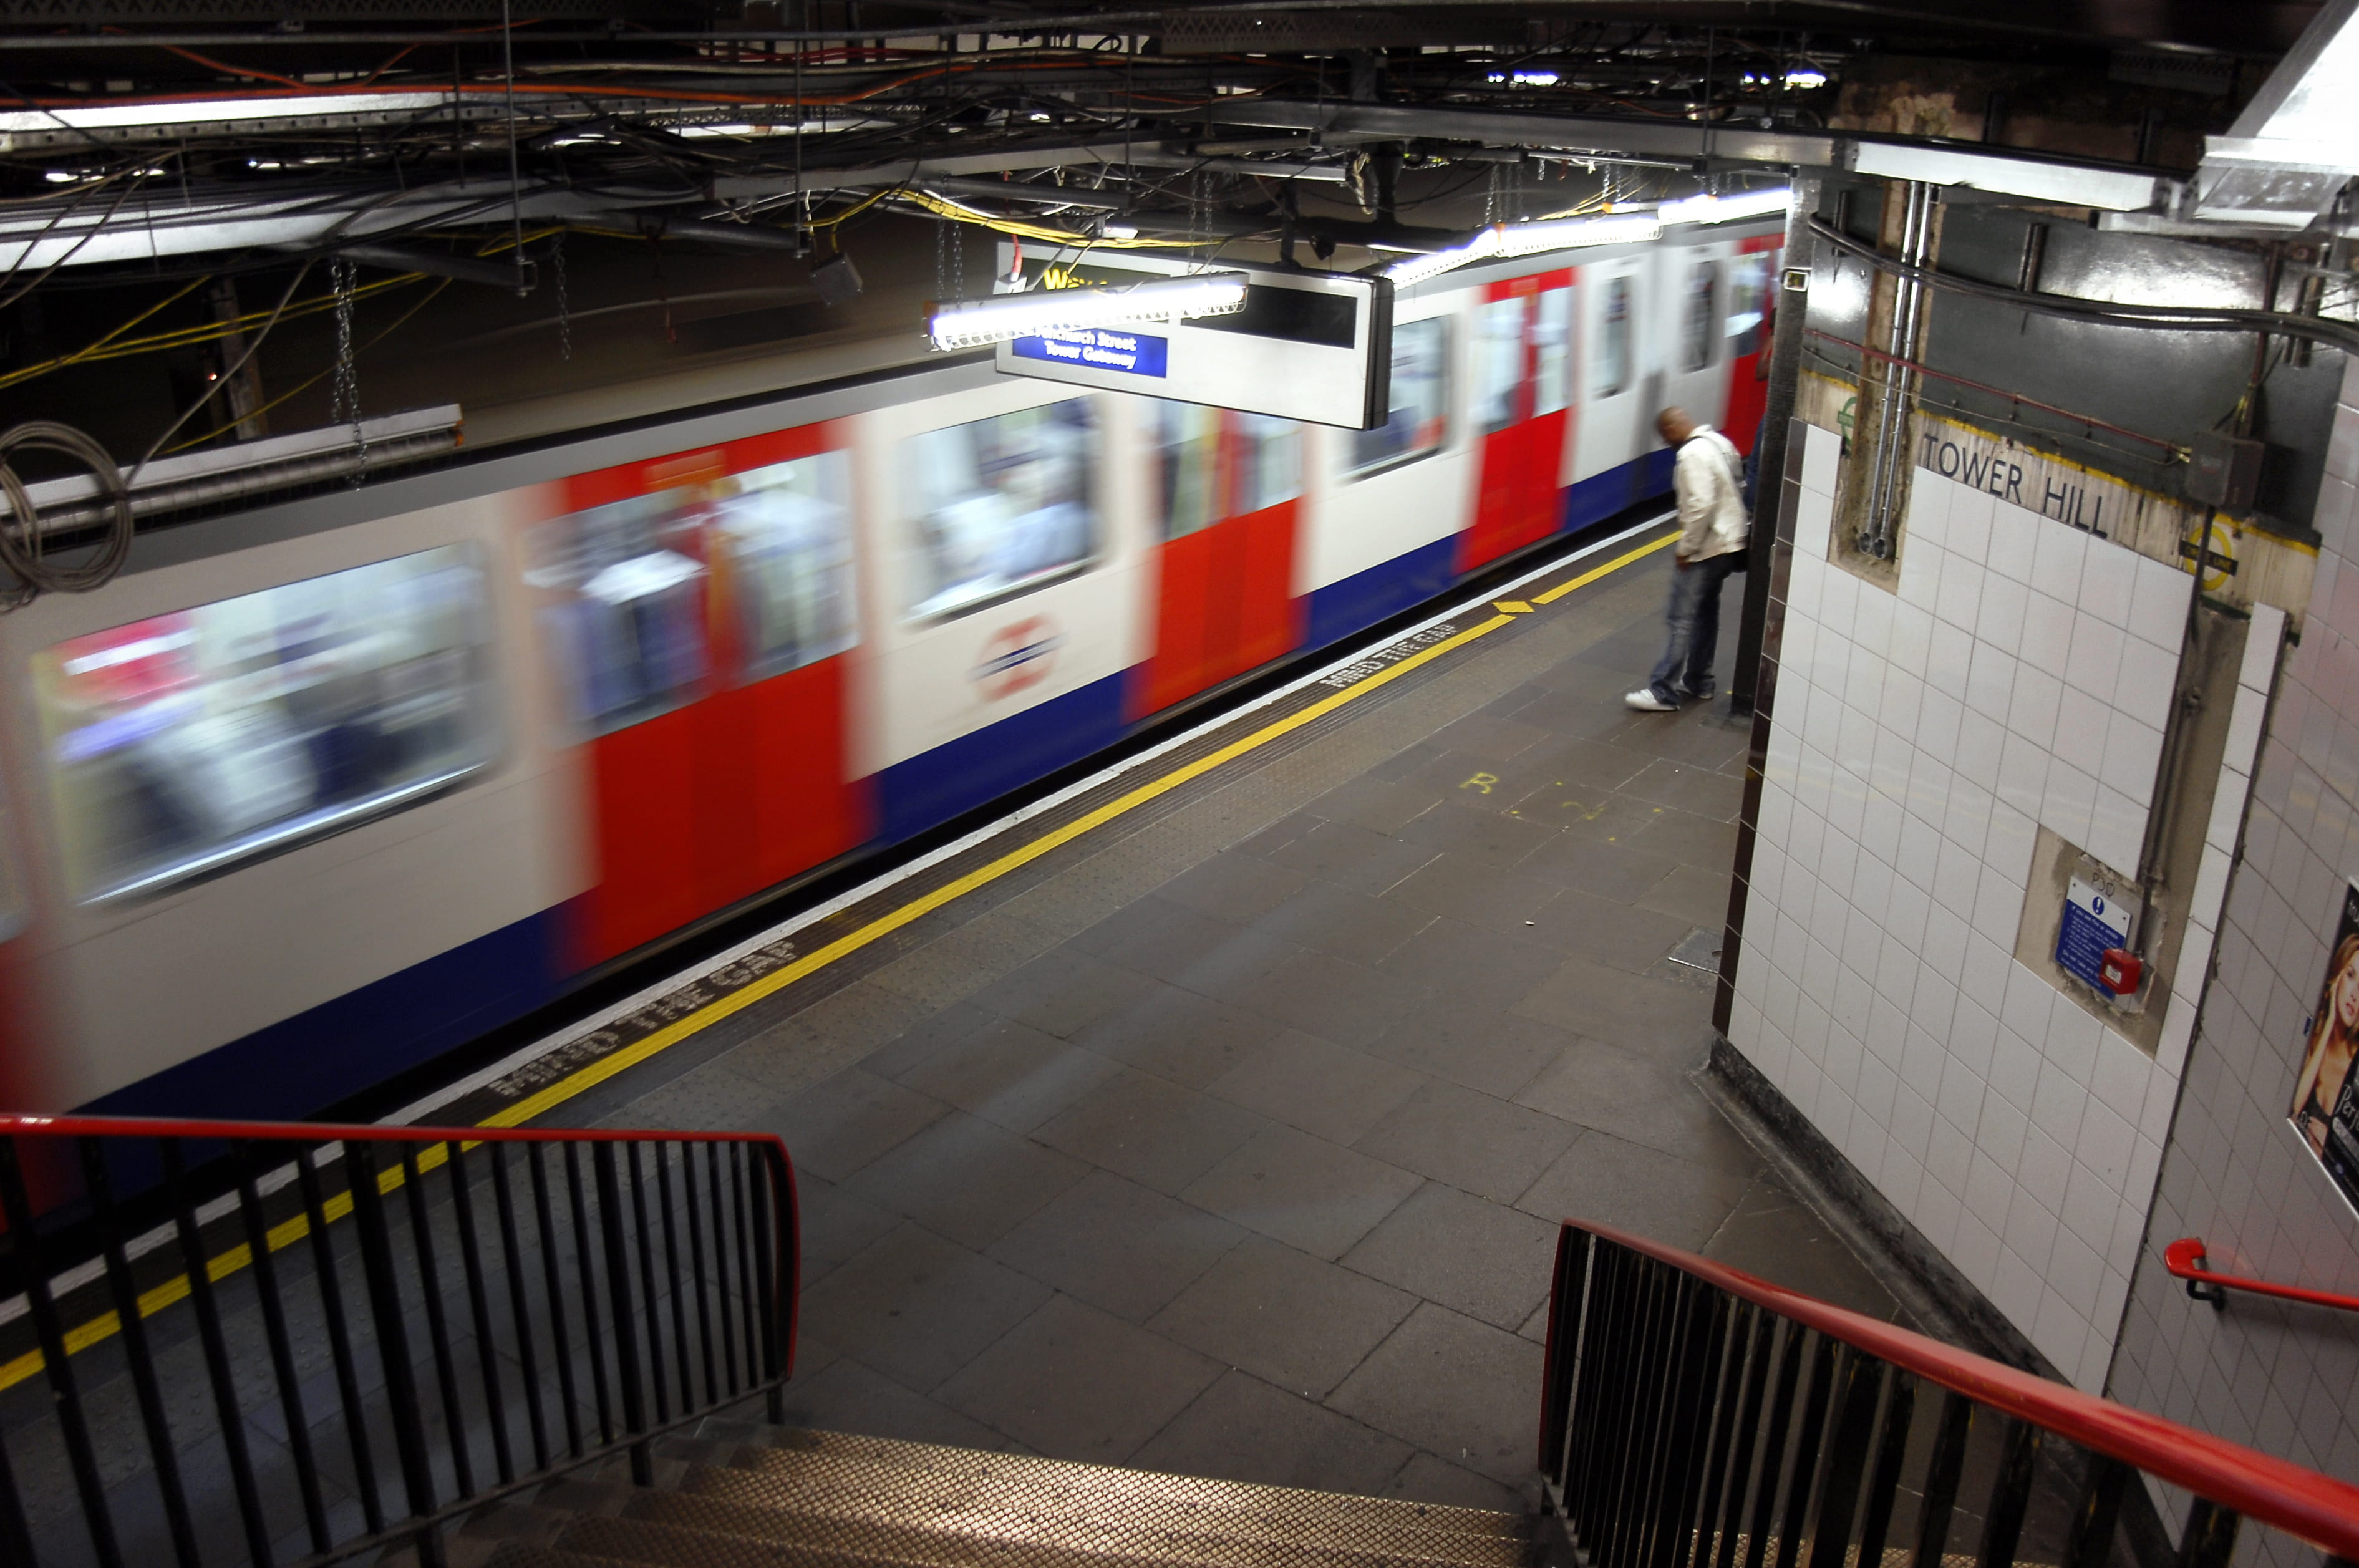 /-/media/Events/2018/London_tube_train.ashx?h=2514&w=3782&hash=A51DB7DE27C12218862728C5657A3F8DBE185394